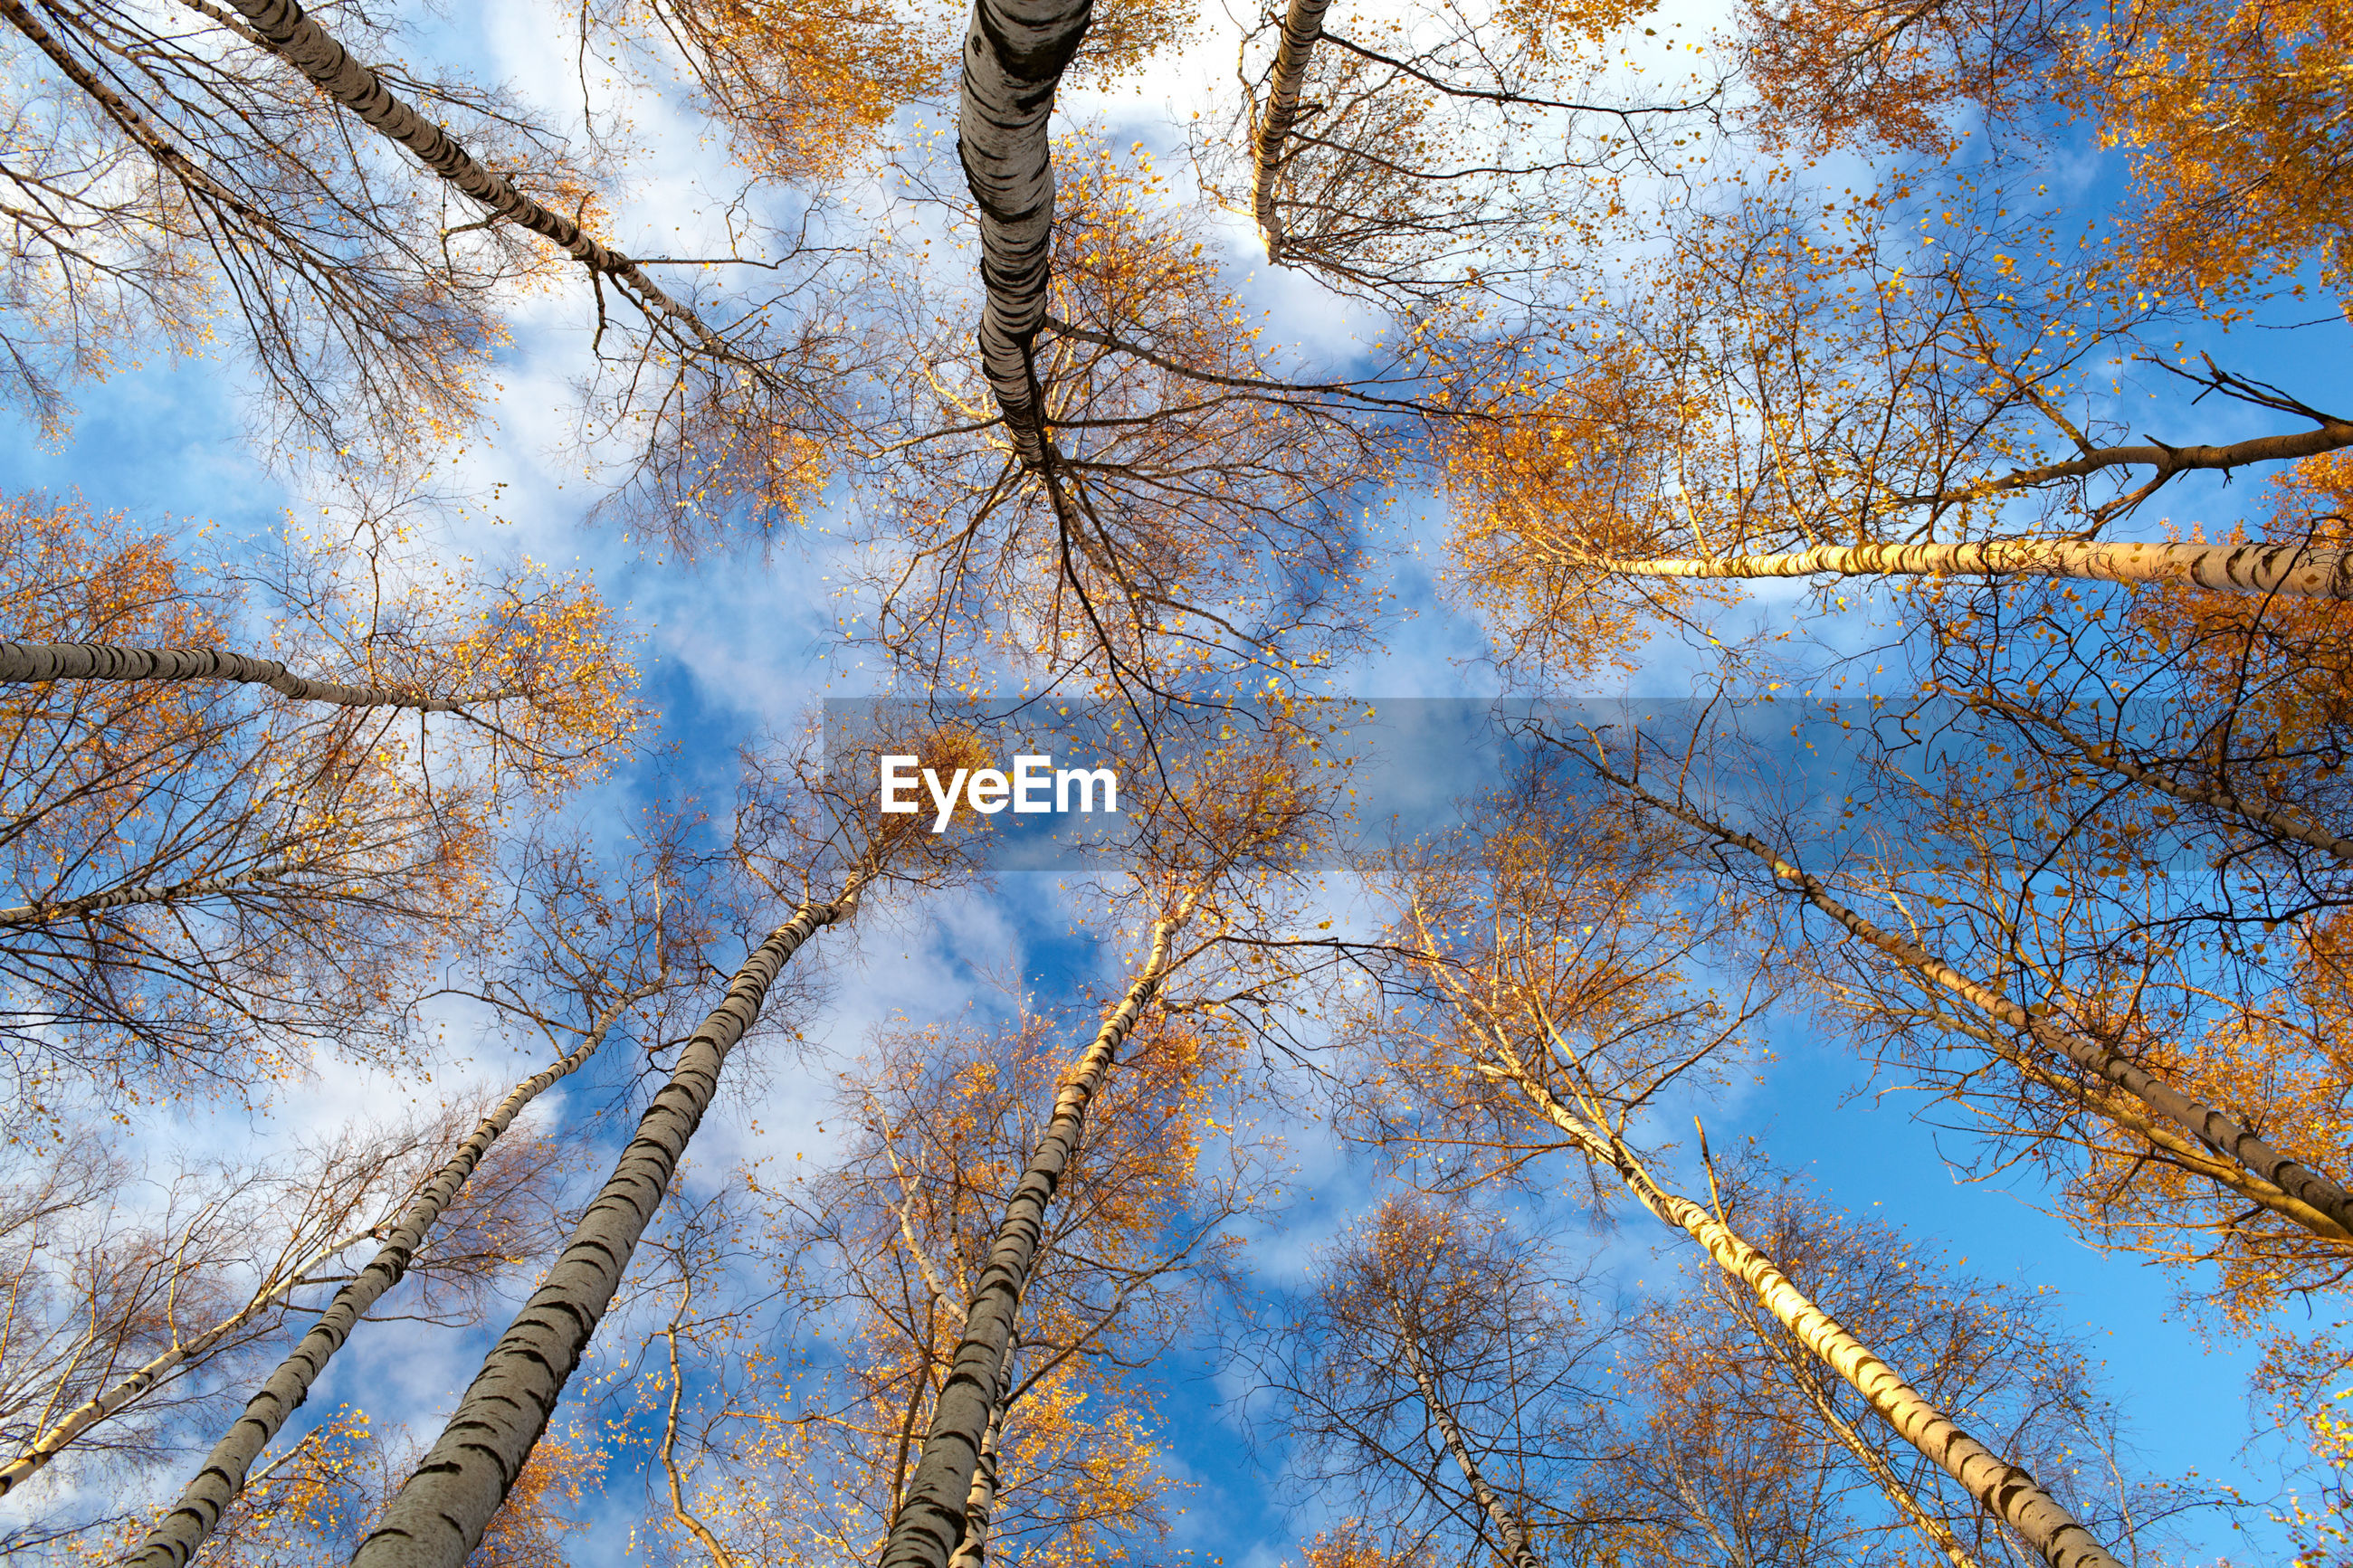 Directly below shot birch trees in forest against sky